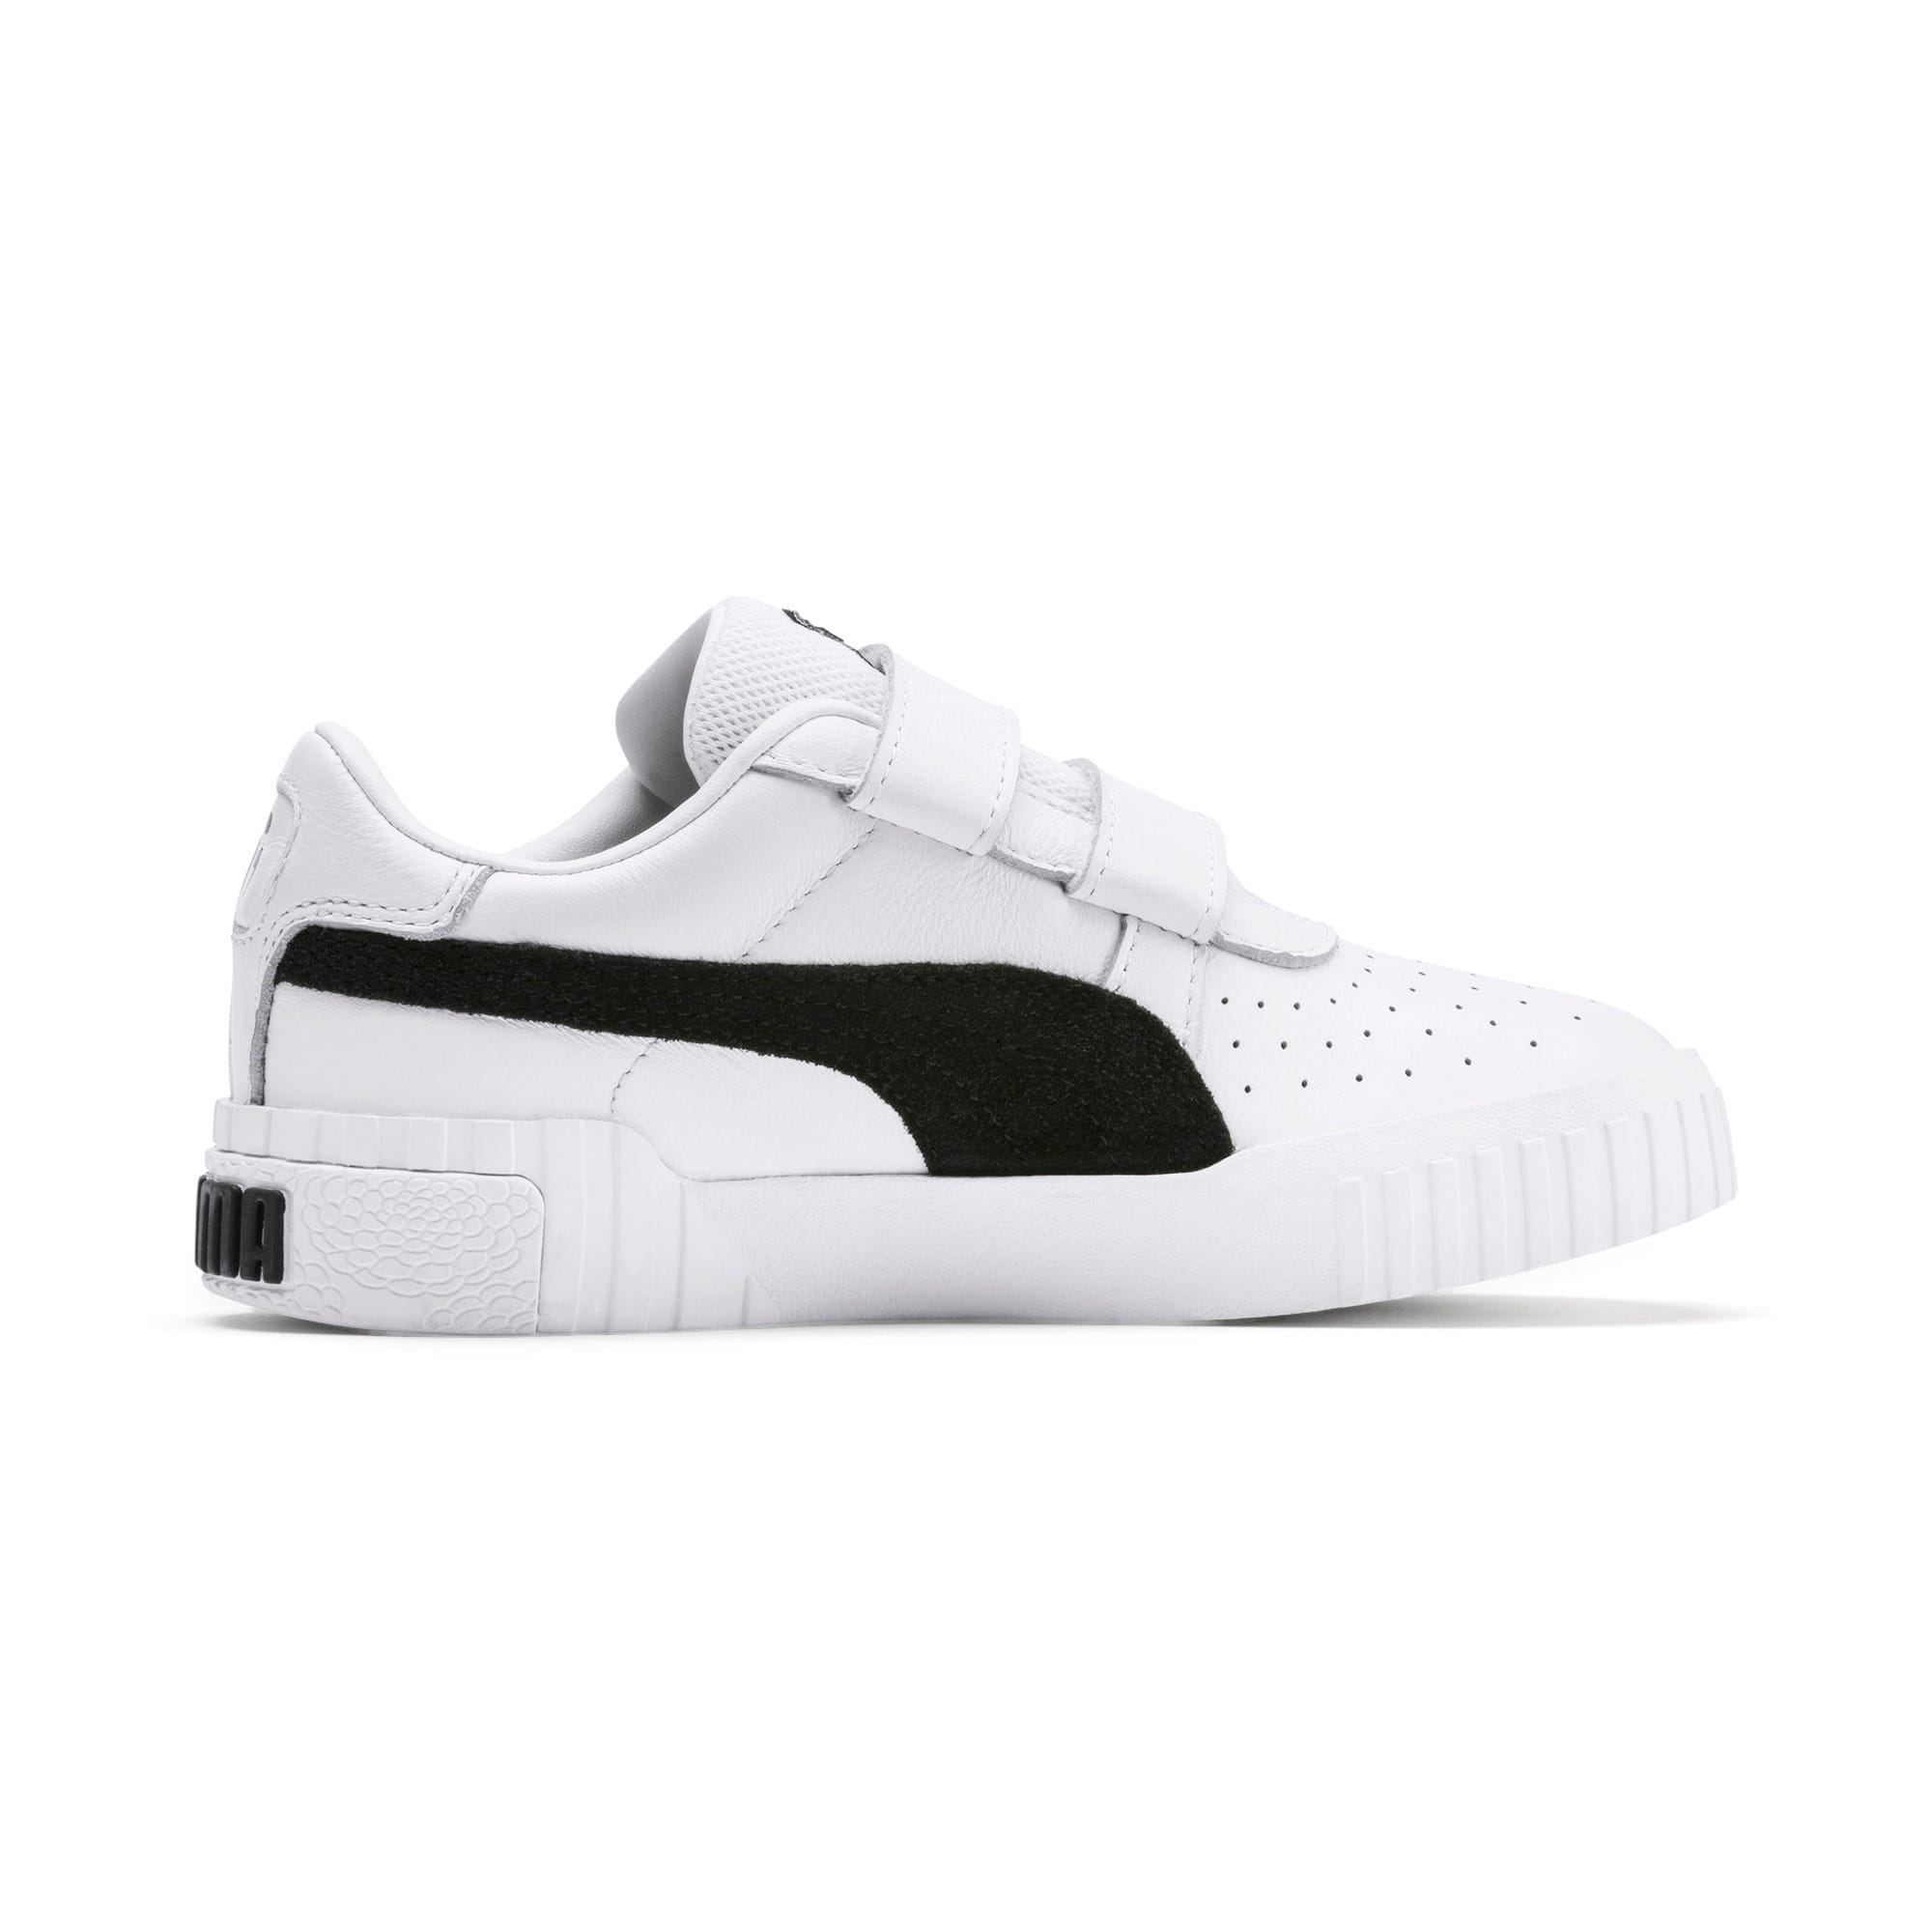 Thumbnail 5 of SG x Cali B+W Little Kids' Shoes, Puma White-Puma Black, medium